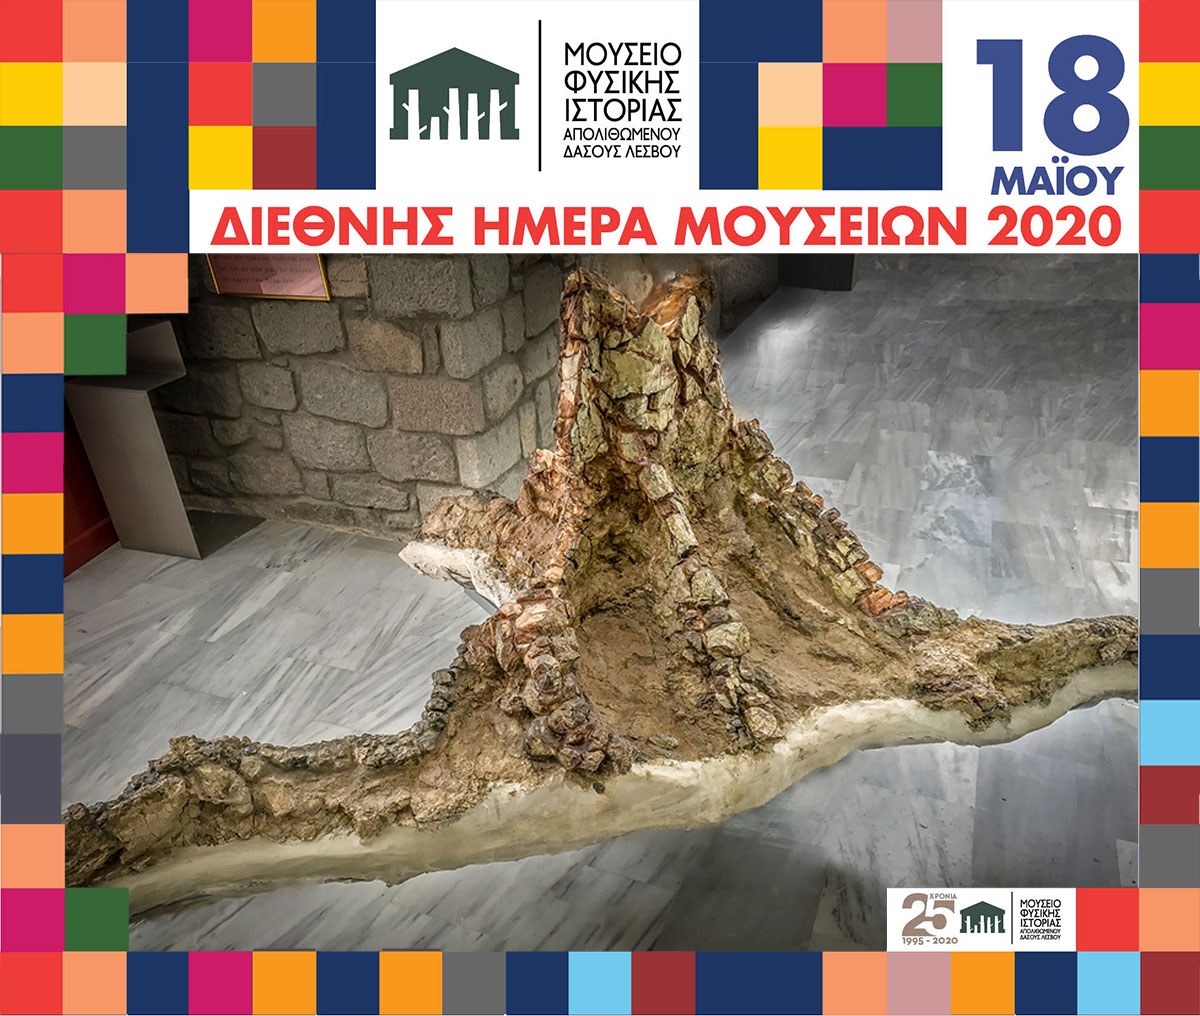 The fossilized trunk was discovered in 2015 during rescue excavations along the Kalloni-Sigri highway.